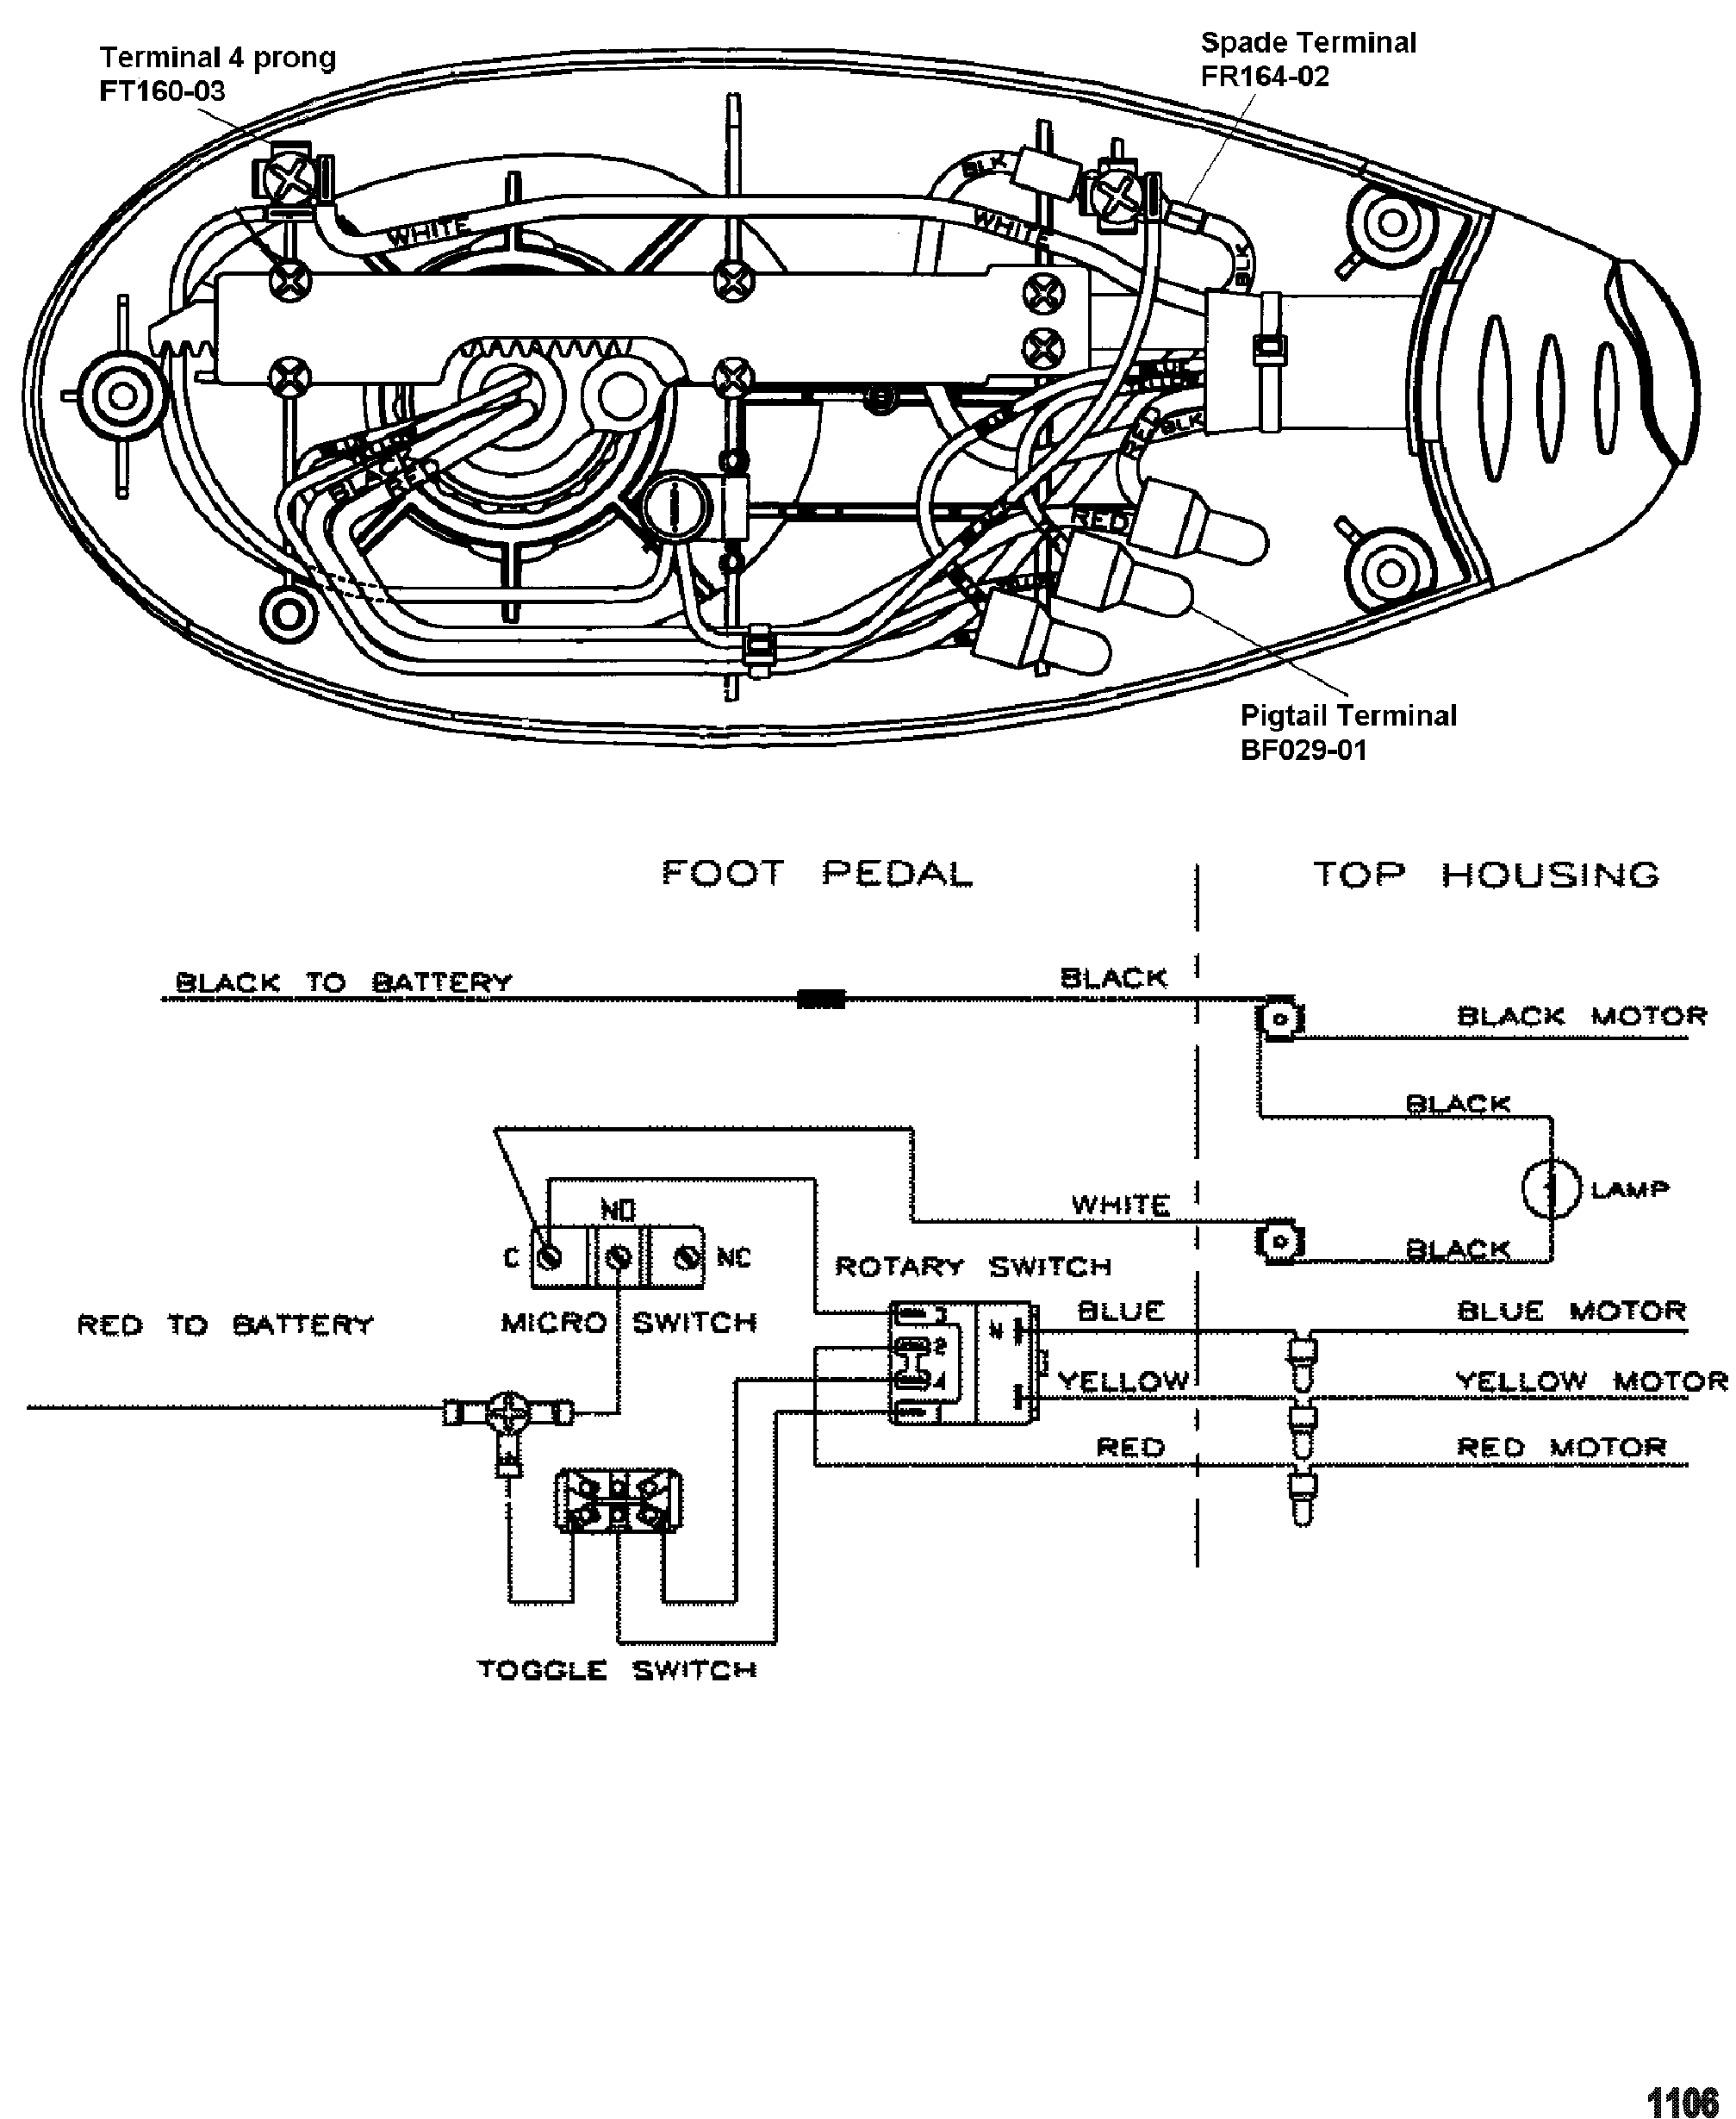 1106 diagrams 600338 motorguide trolling motor wiring diagram motorguide brute trolling motor wiring diagram at bakdesigns.co